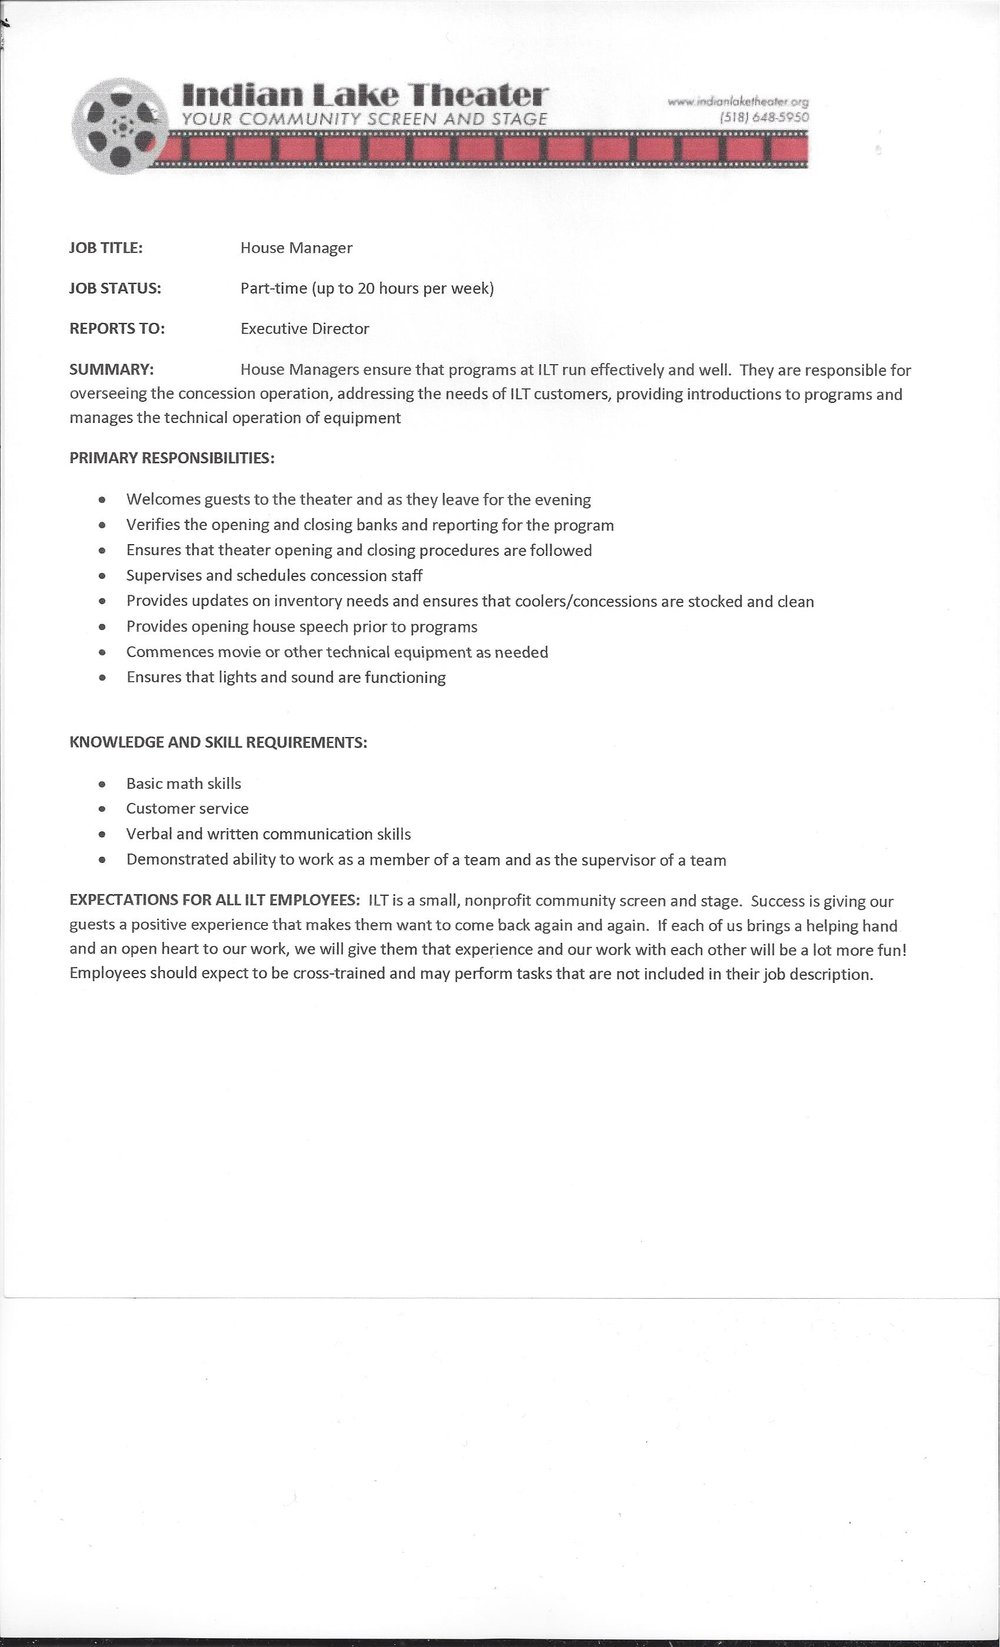 House Manager Job Description — Indian Lake Theater